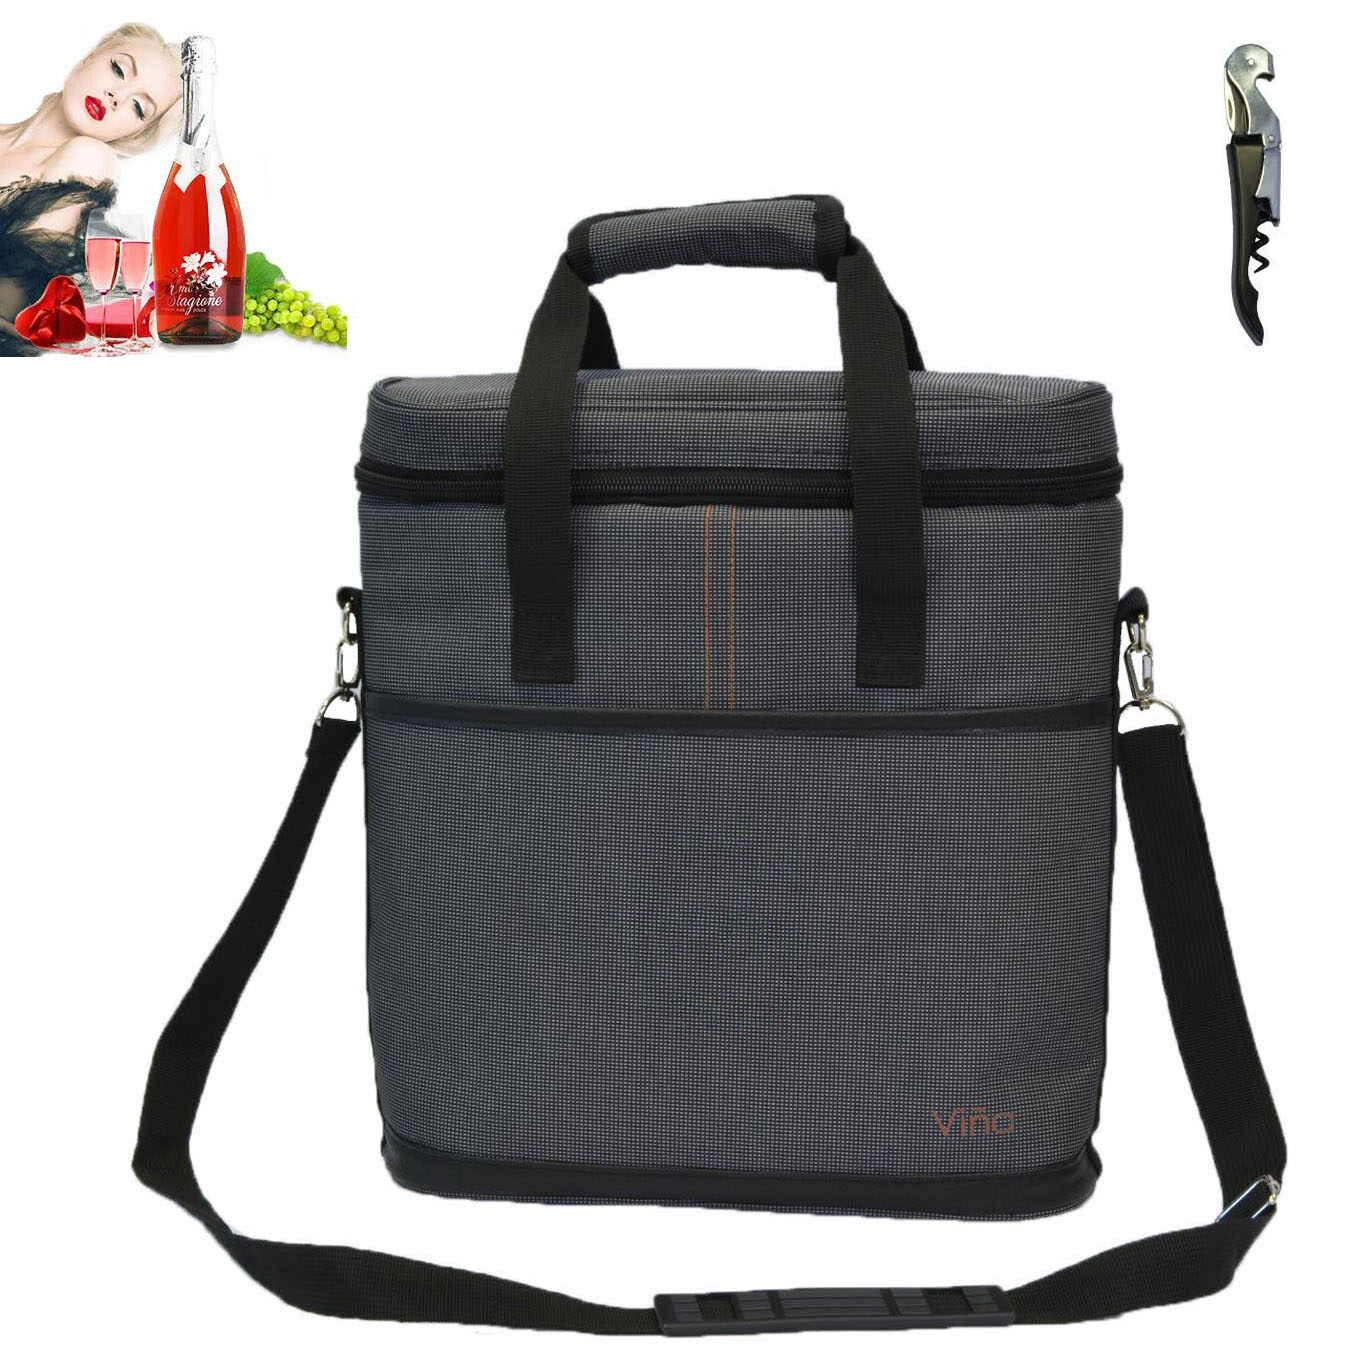 Vina 2-bottle Wine Carrier Bag Beer Carrying Tote Bags Picnic Cooler Insulated Travel Wine Pouch, Gray +Free Corkscrew